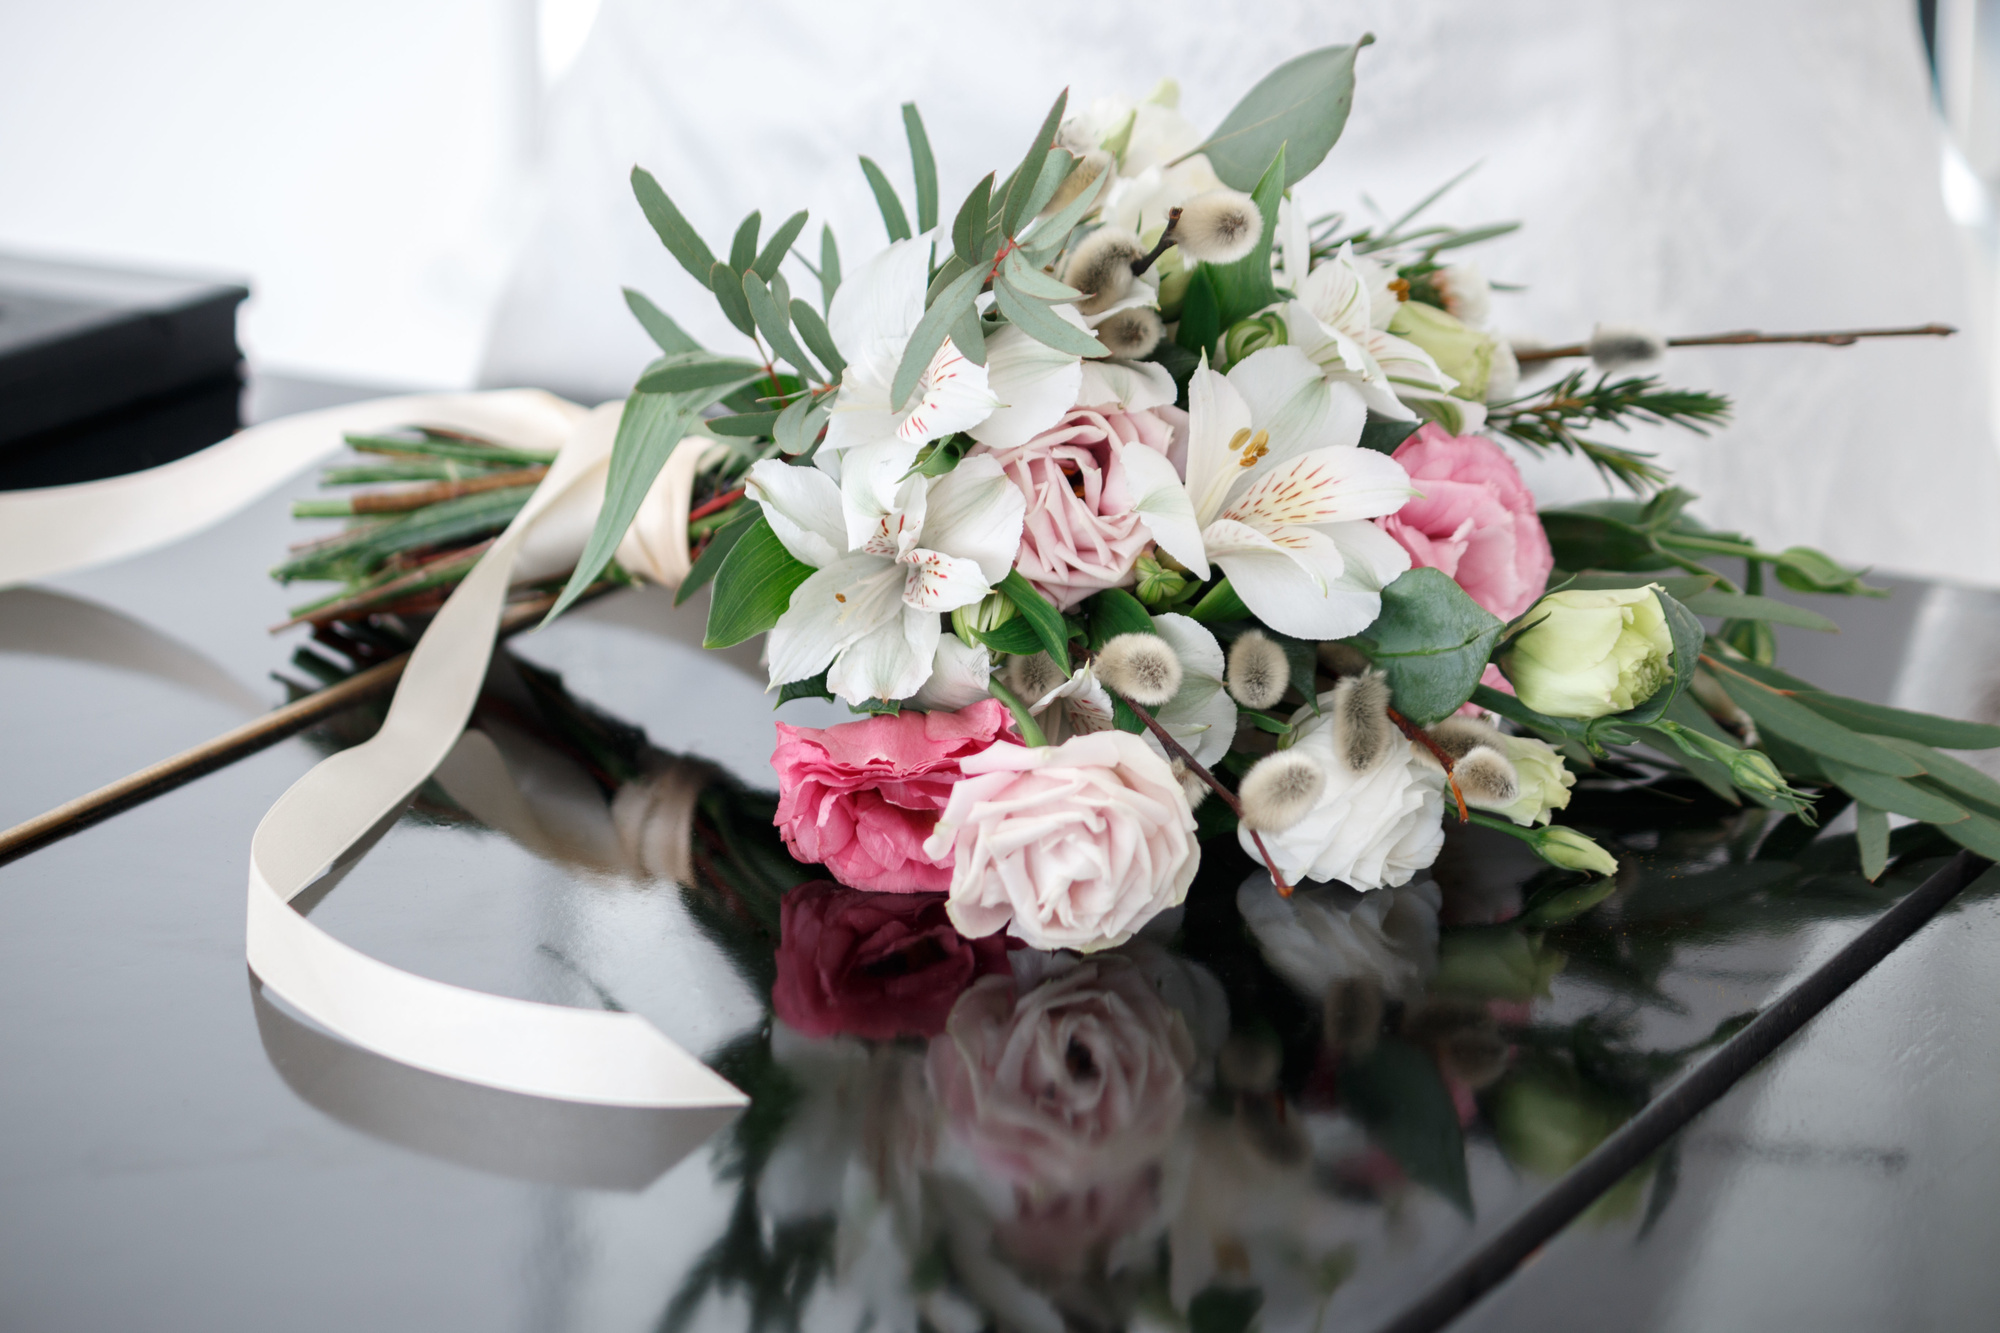 Flowers for a Funeral